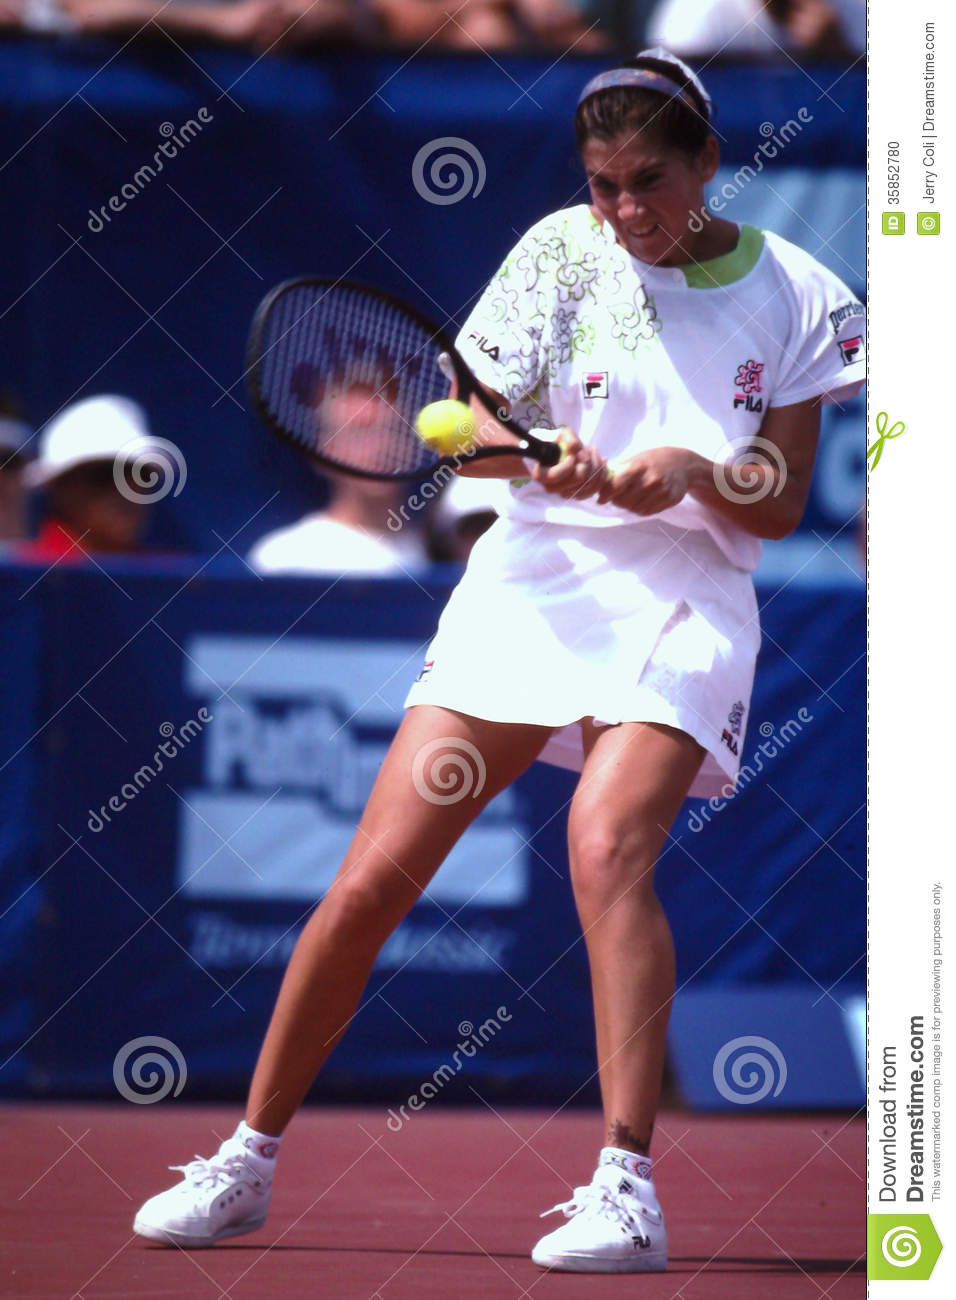 Monica Seles editorial image Image of professional love